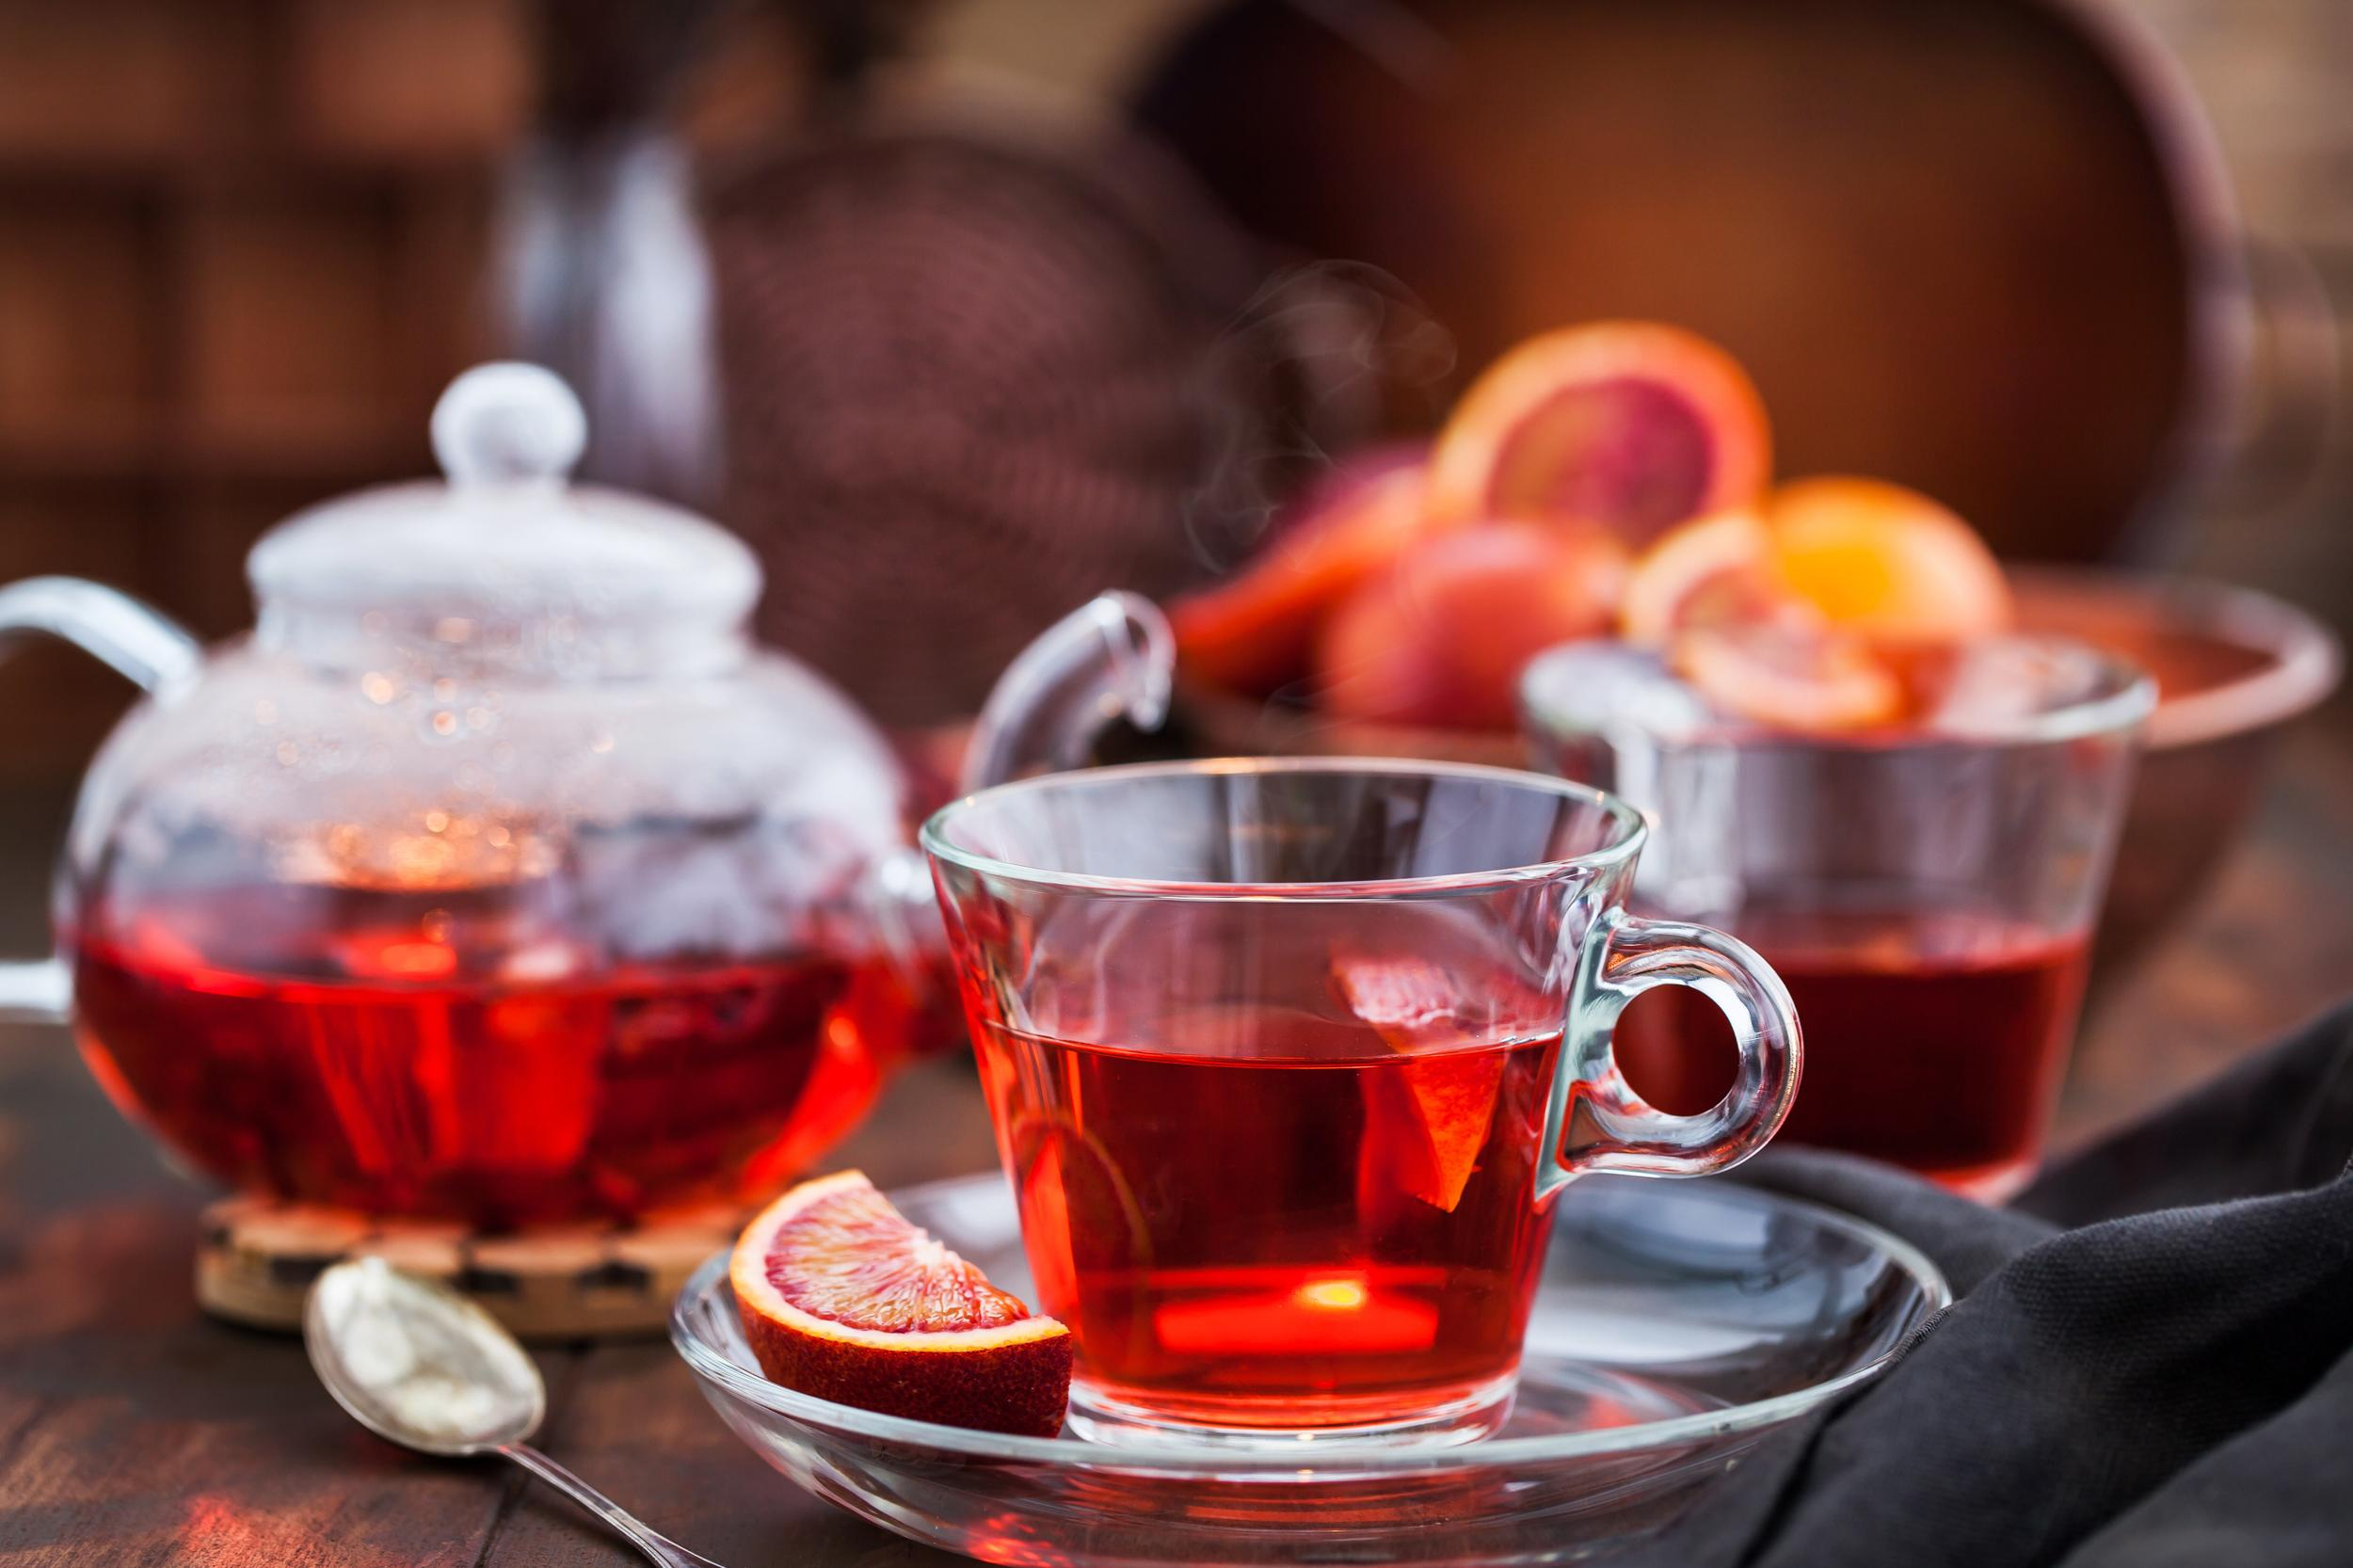 Red hot hibiscus tea in glass mug and teapot on wooden table